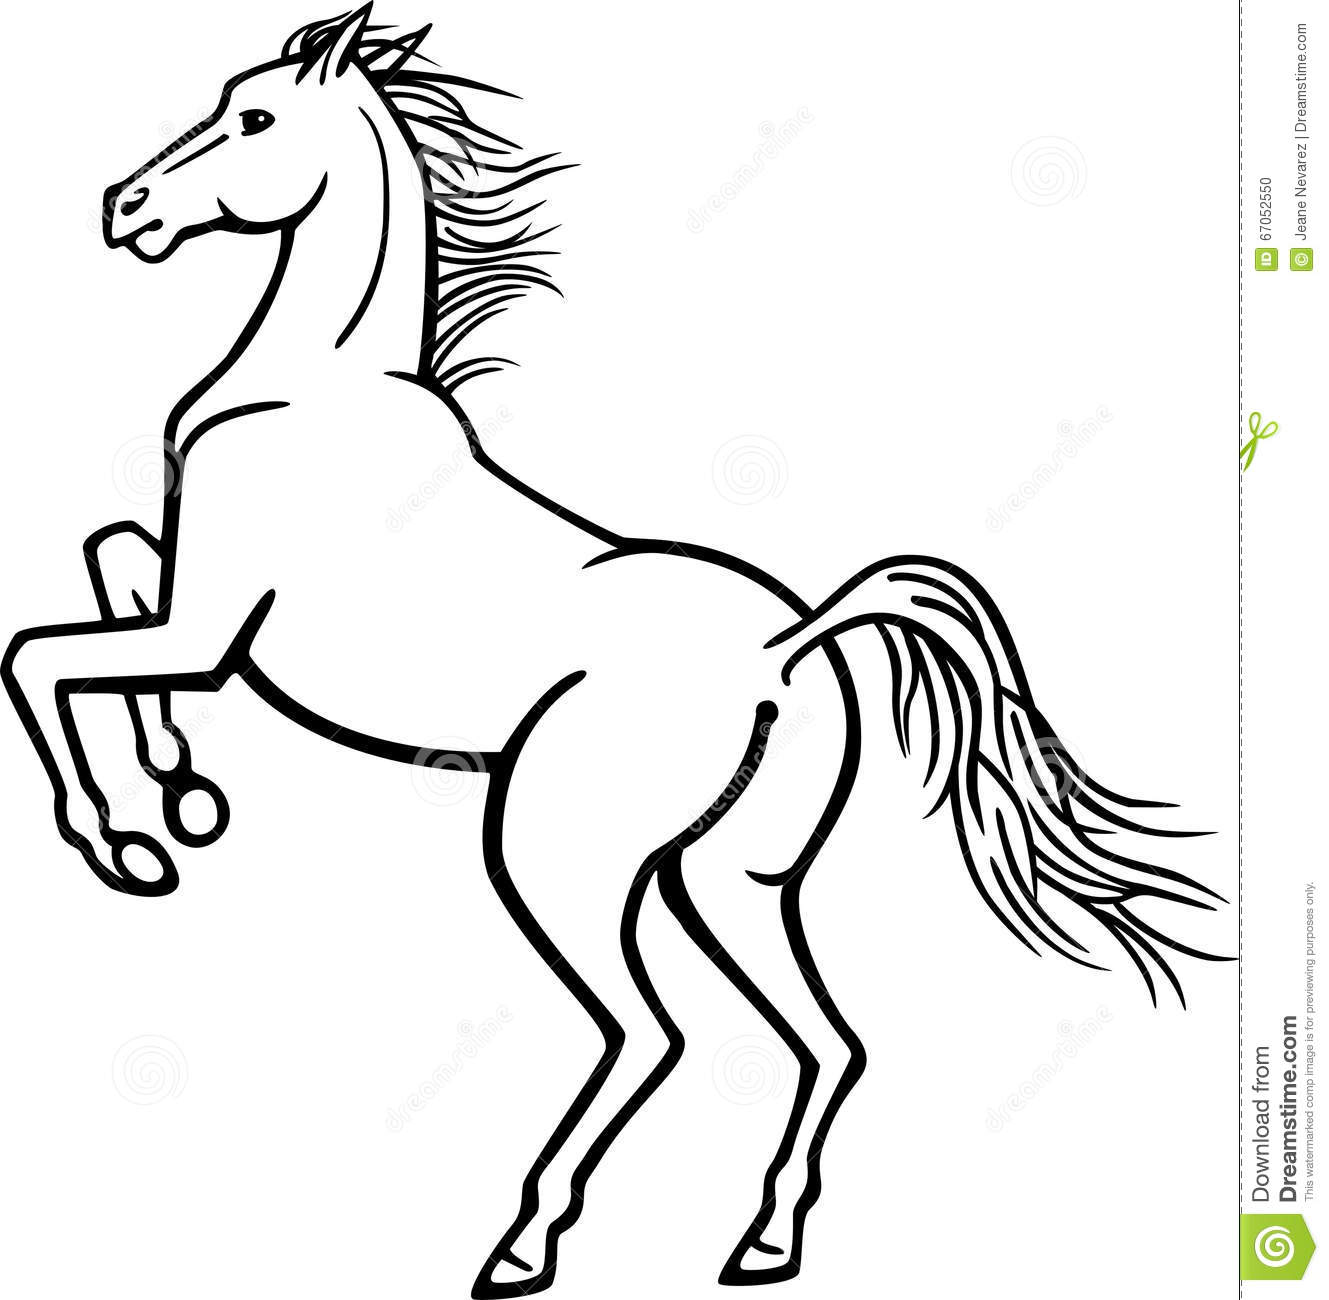 how to draw a horse standing up how to draw a horse the new yorker horse draw up standing how to a